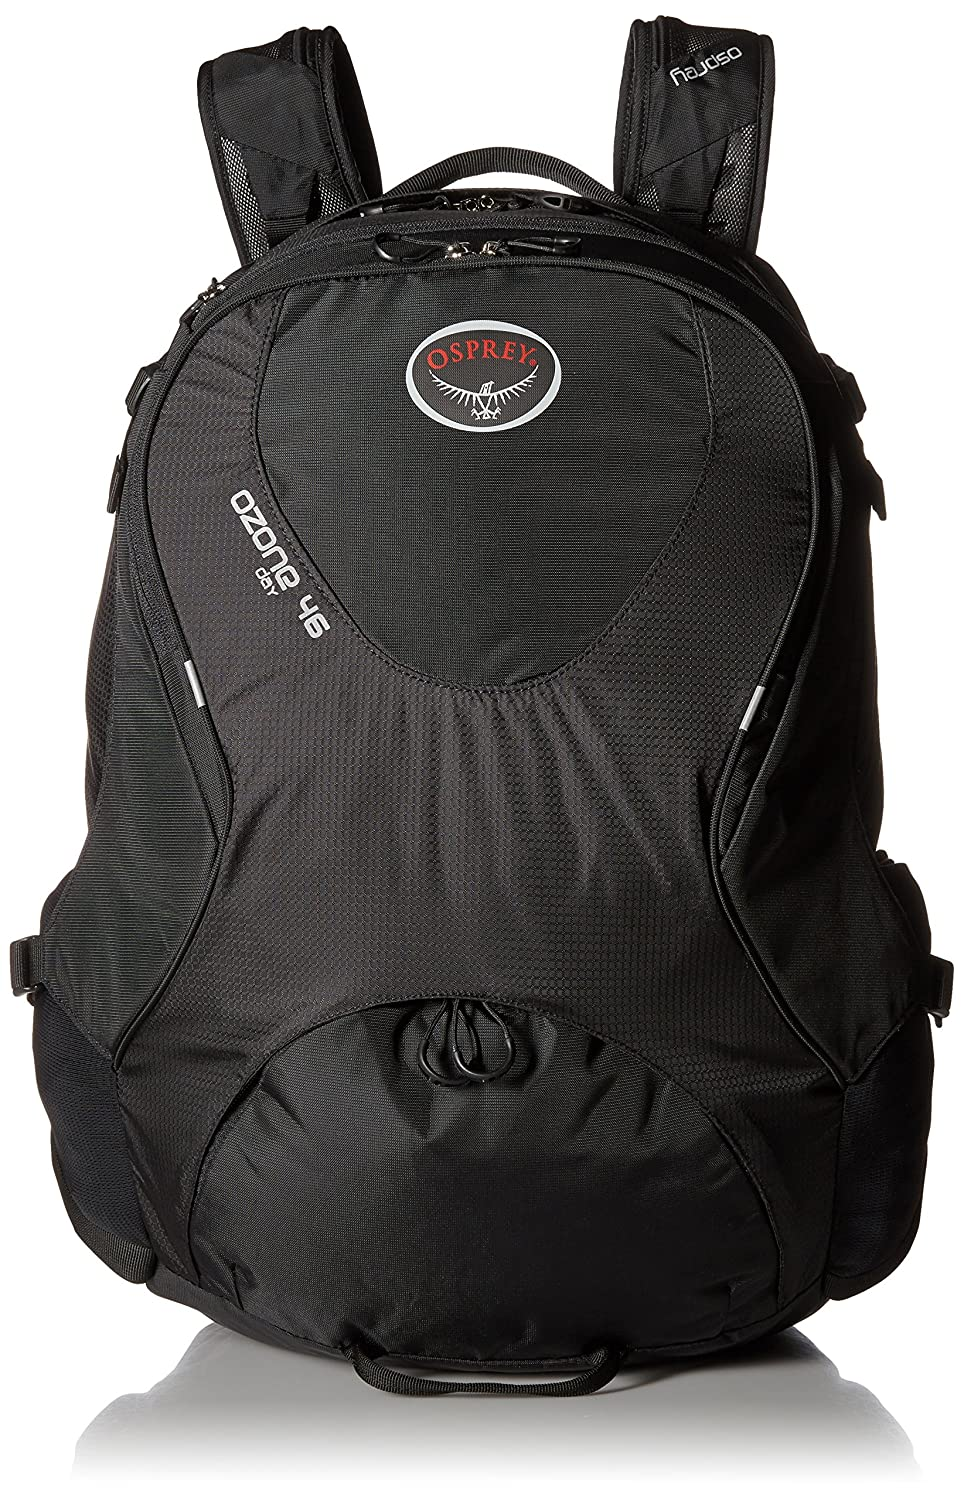 Osprey Porter 46L Travel Pack Black Friday Deals